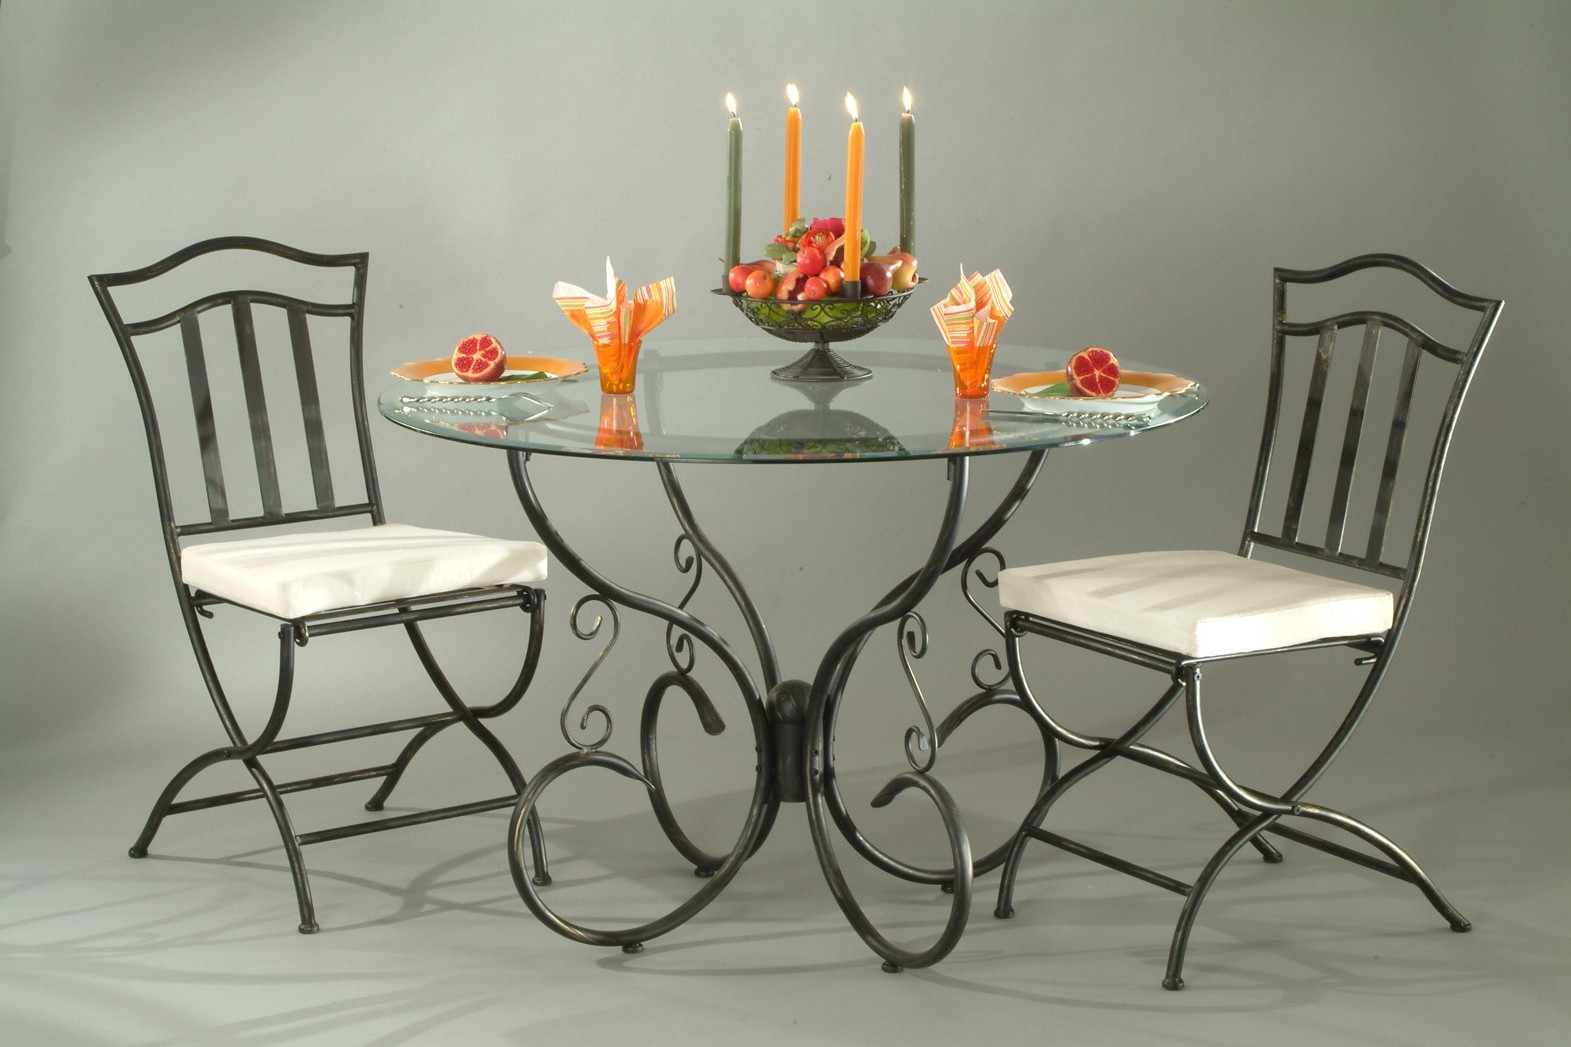 Table salle a manger et chaise maison design for Table a manger chaises